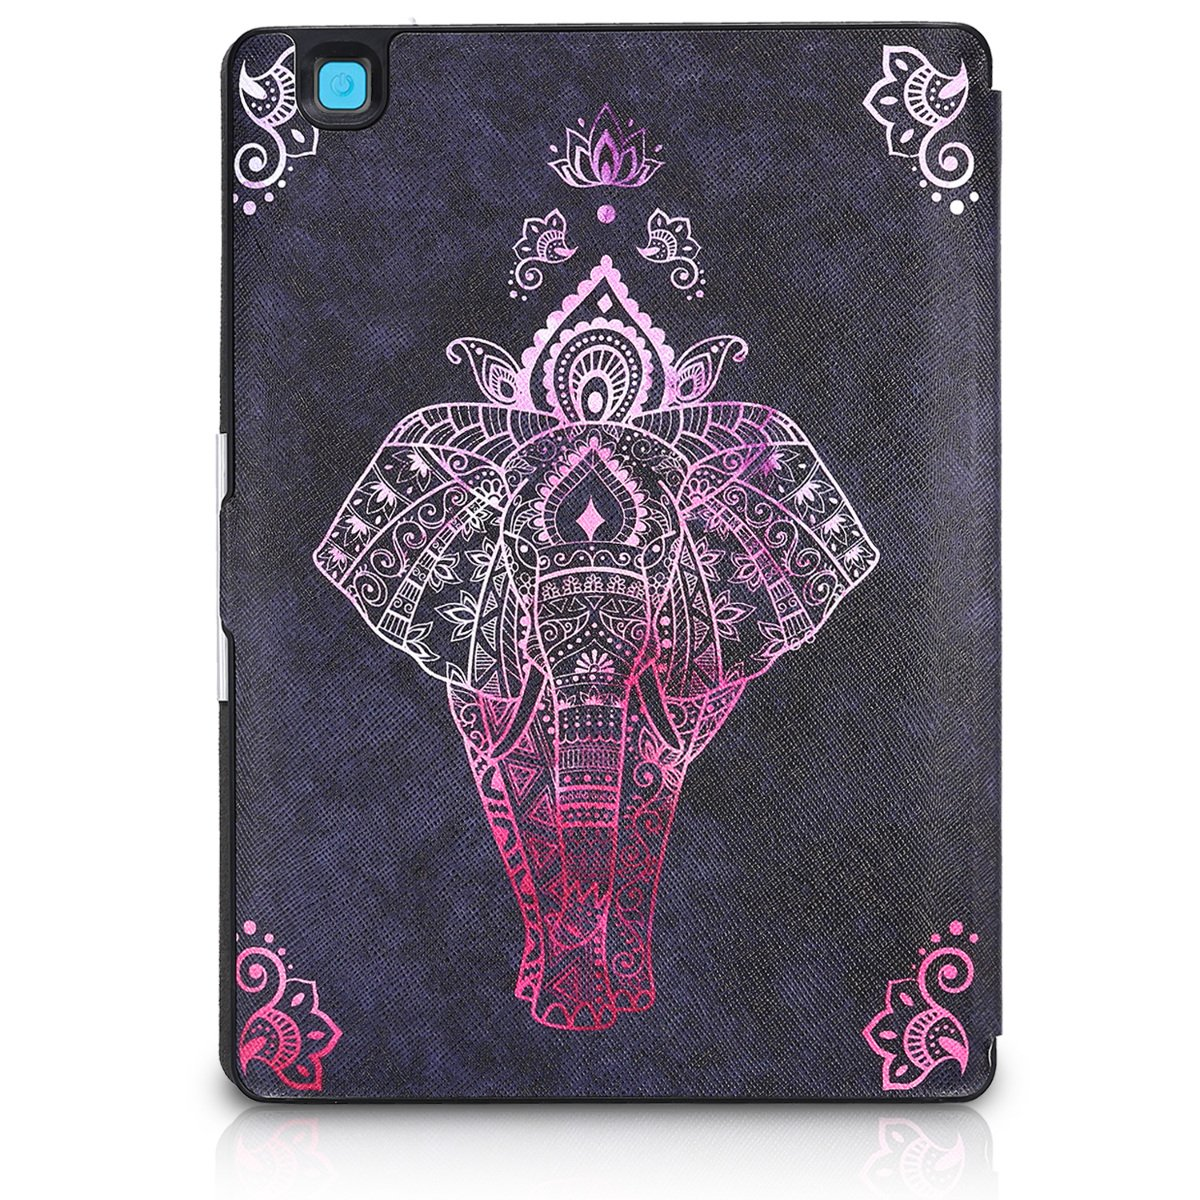 kwmobile Cover case for Kobo Aura ONE with stand - Ultra slim case made of synthetic leather Elephant Sketch in dark pink anthracite by kwmobile (Image #4)